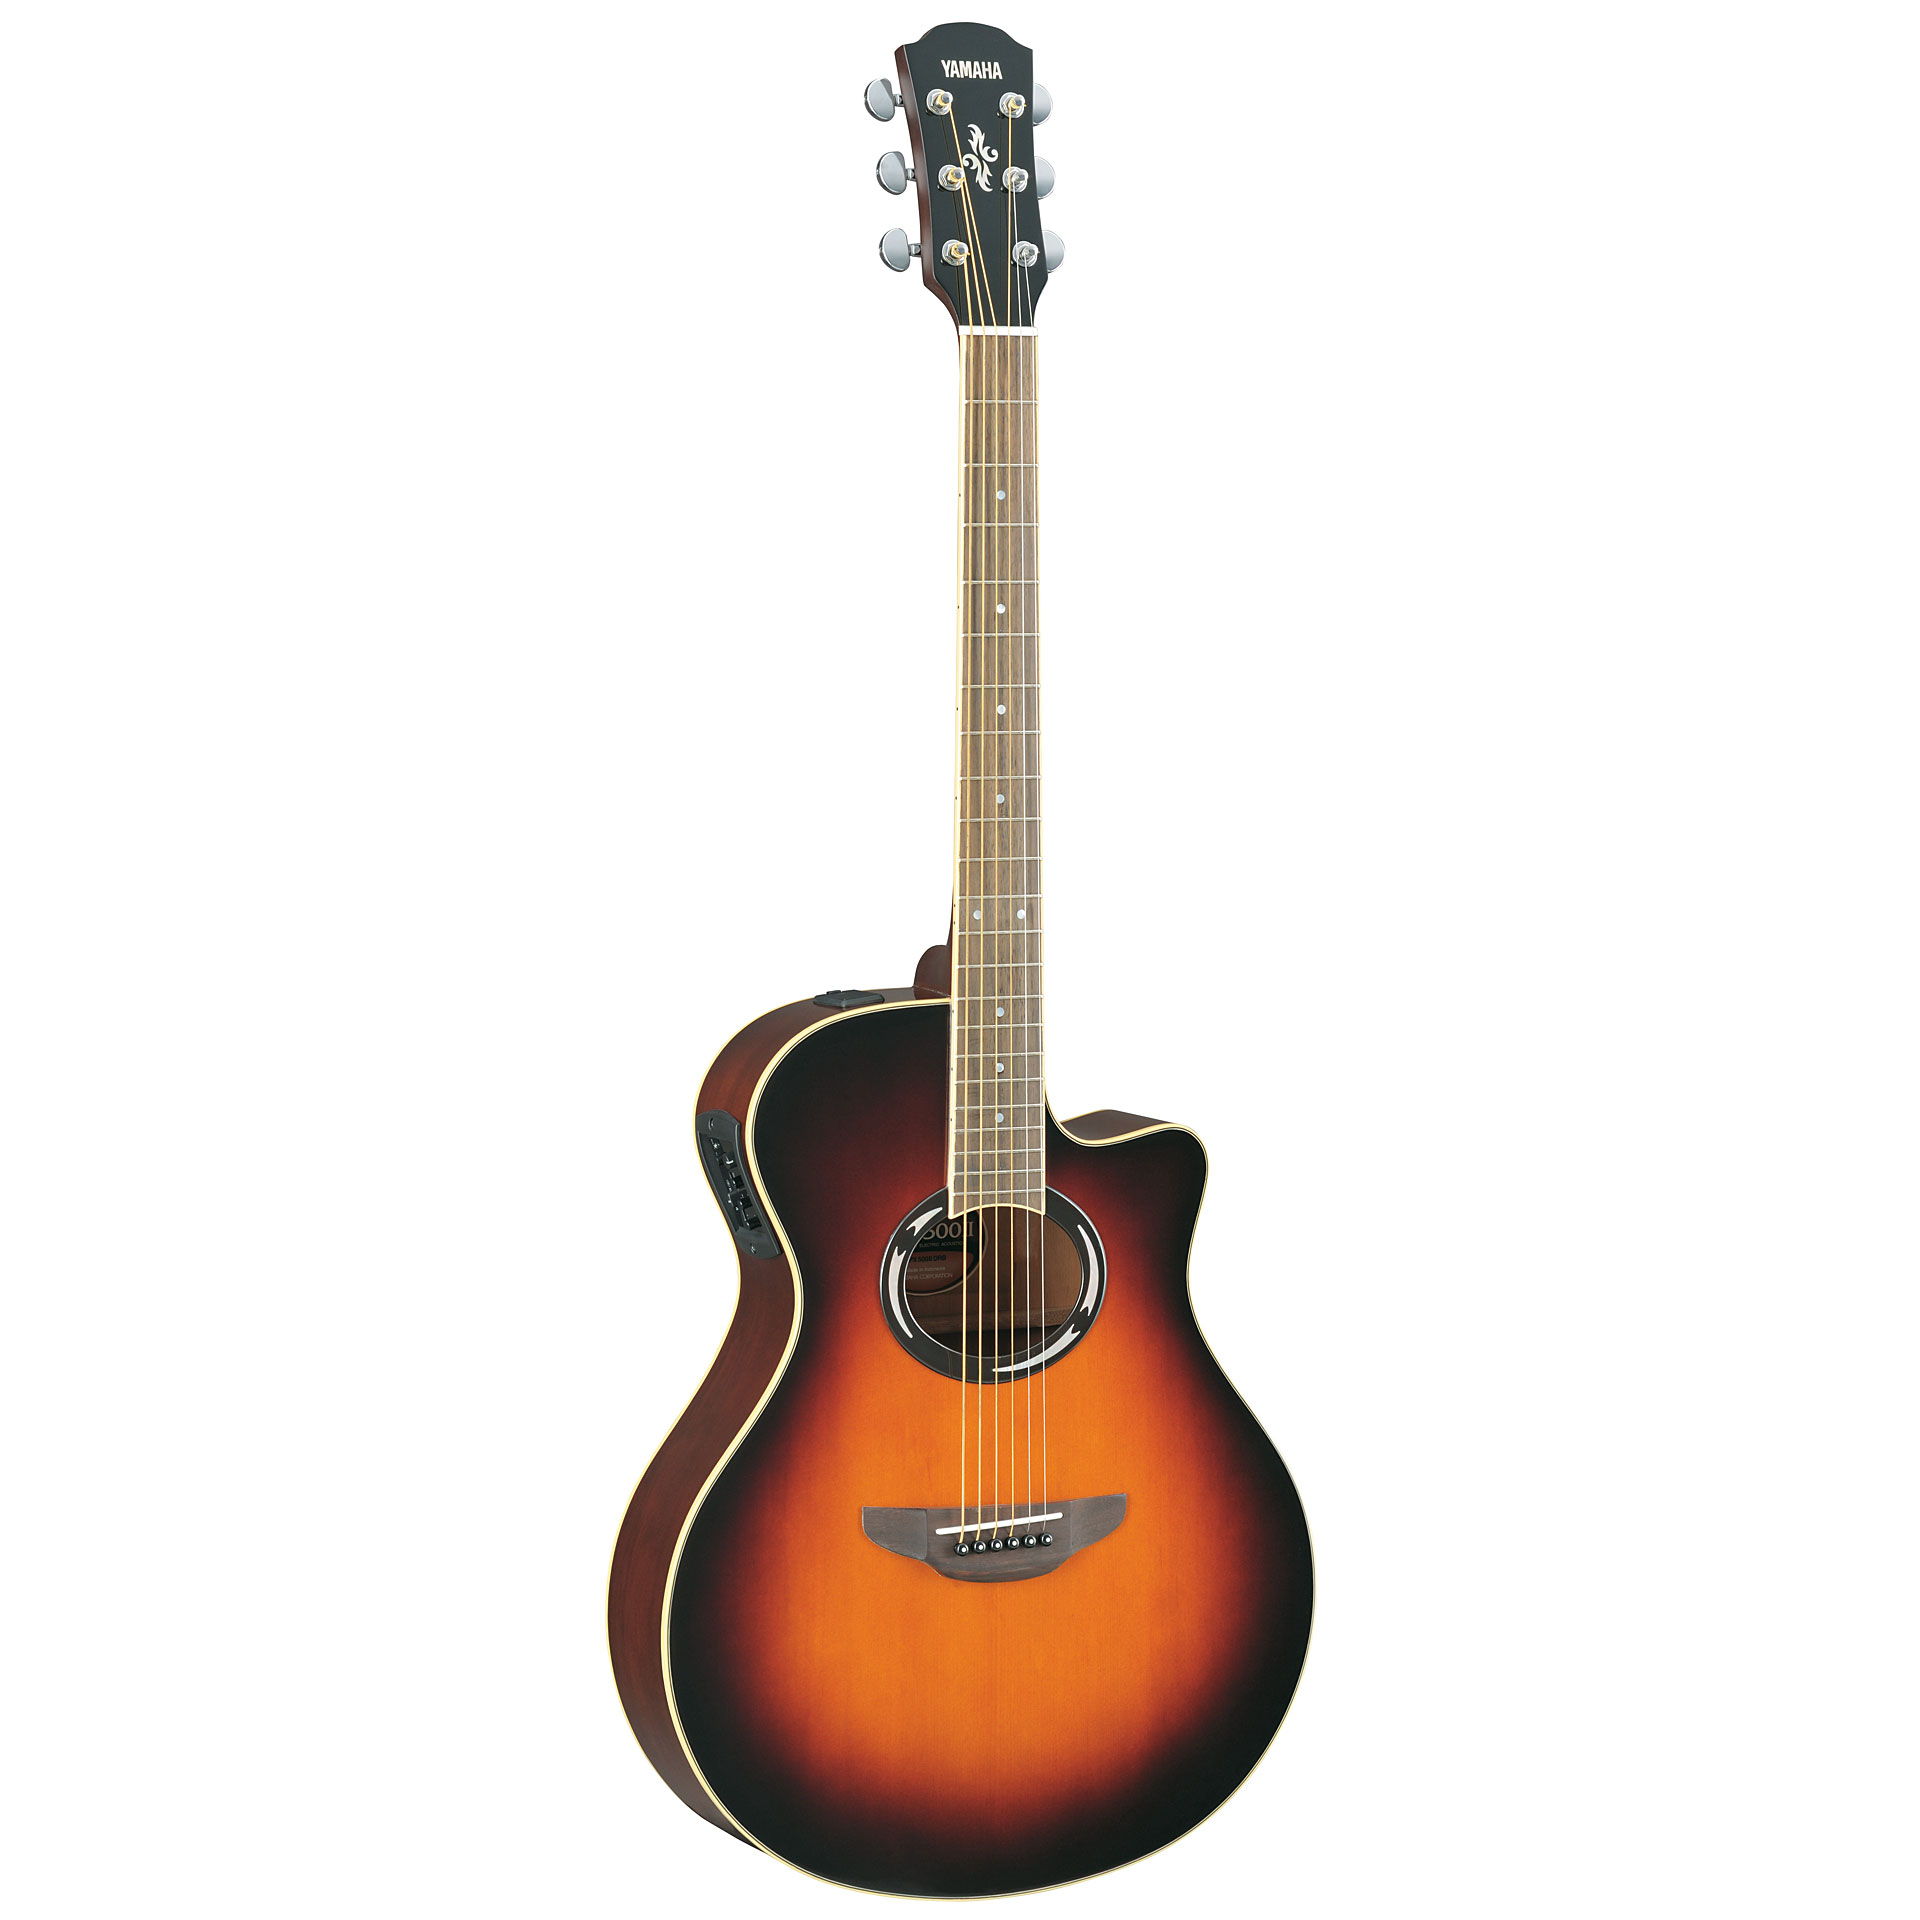 Yamaha apx500iii vs acoustic guitar for Yamaha apx series